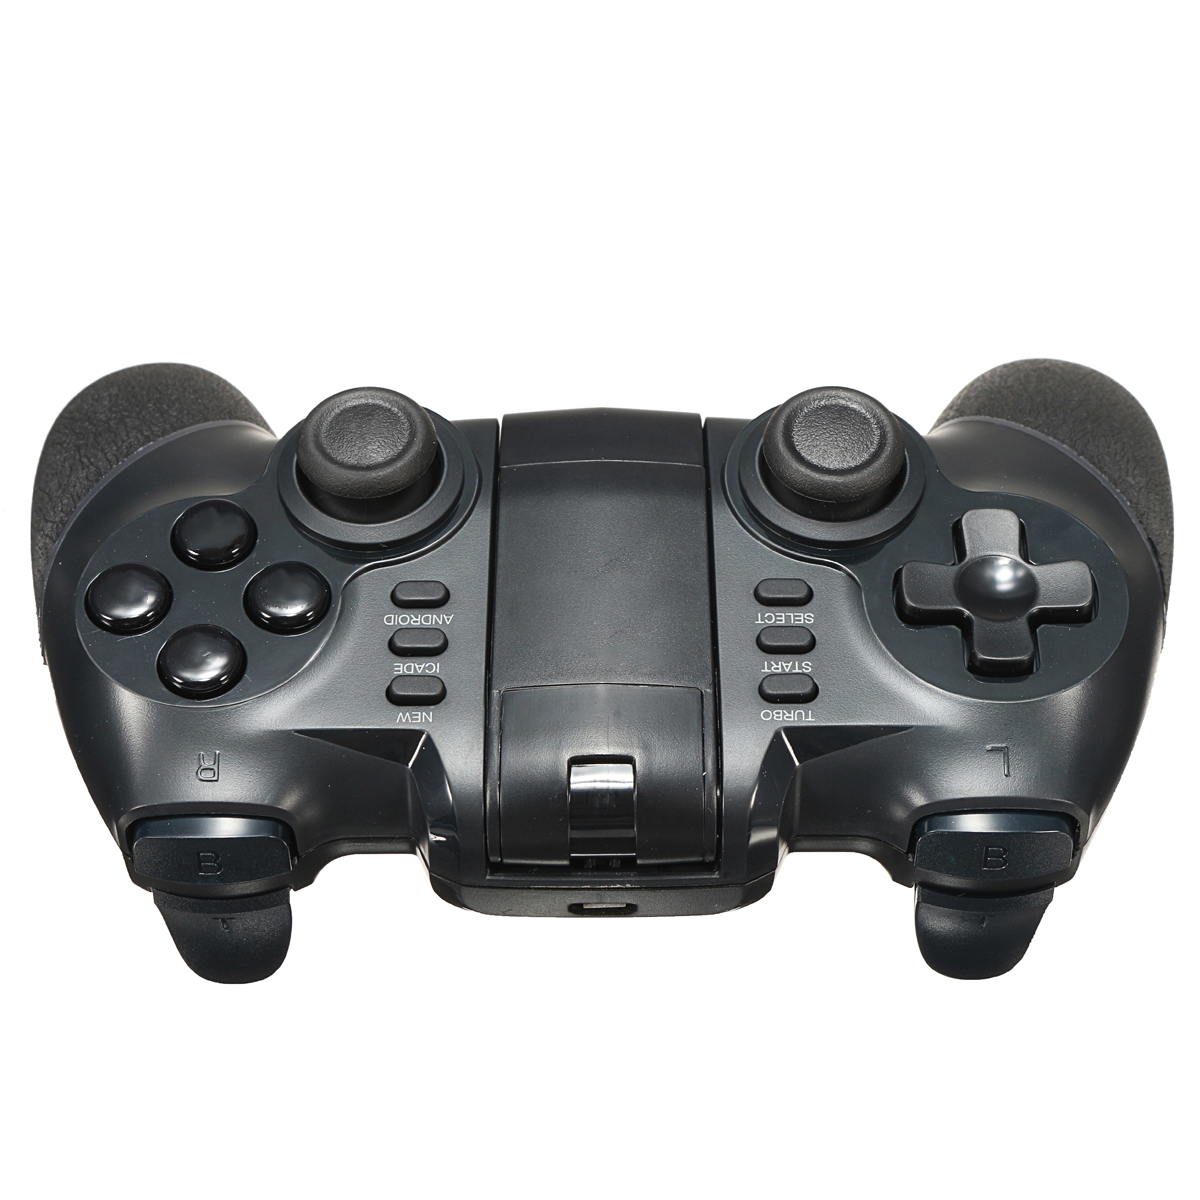 iPega PG-9077 Gaming bluetooth Wireless Controller Gamepad Joystick for Smartphone iOS Android Win X